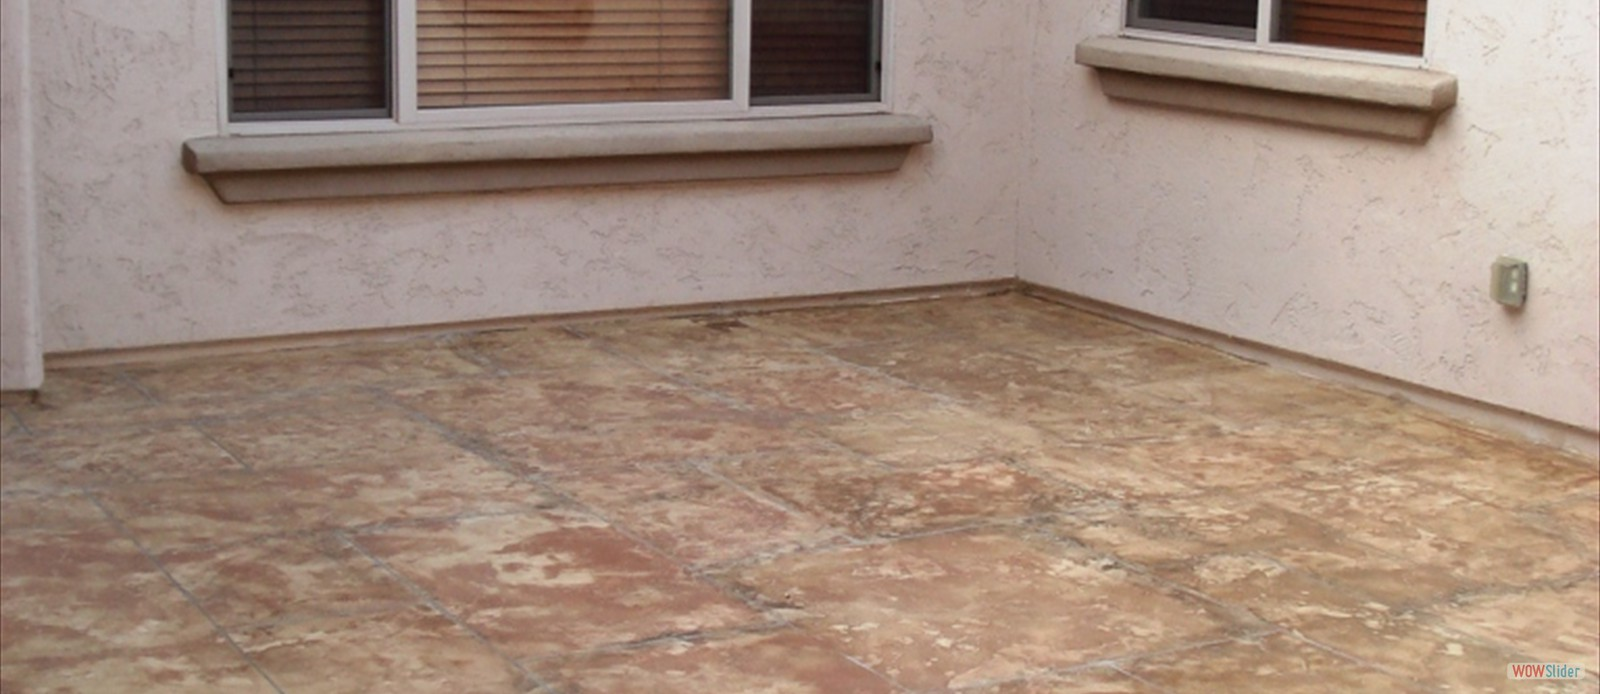 Front Entry Way After